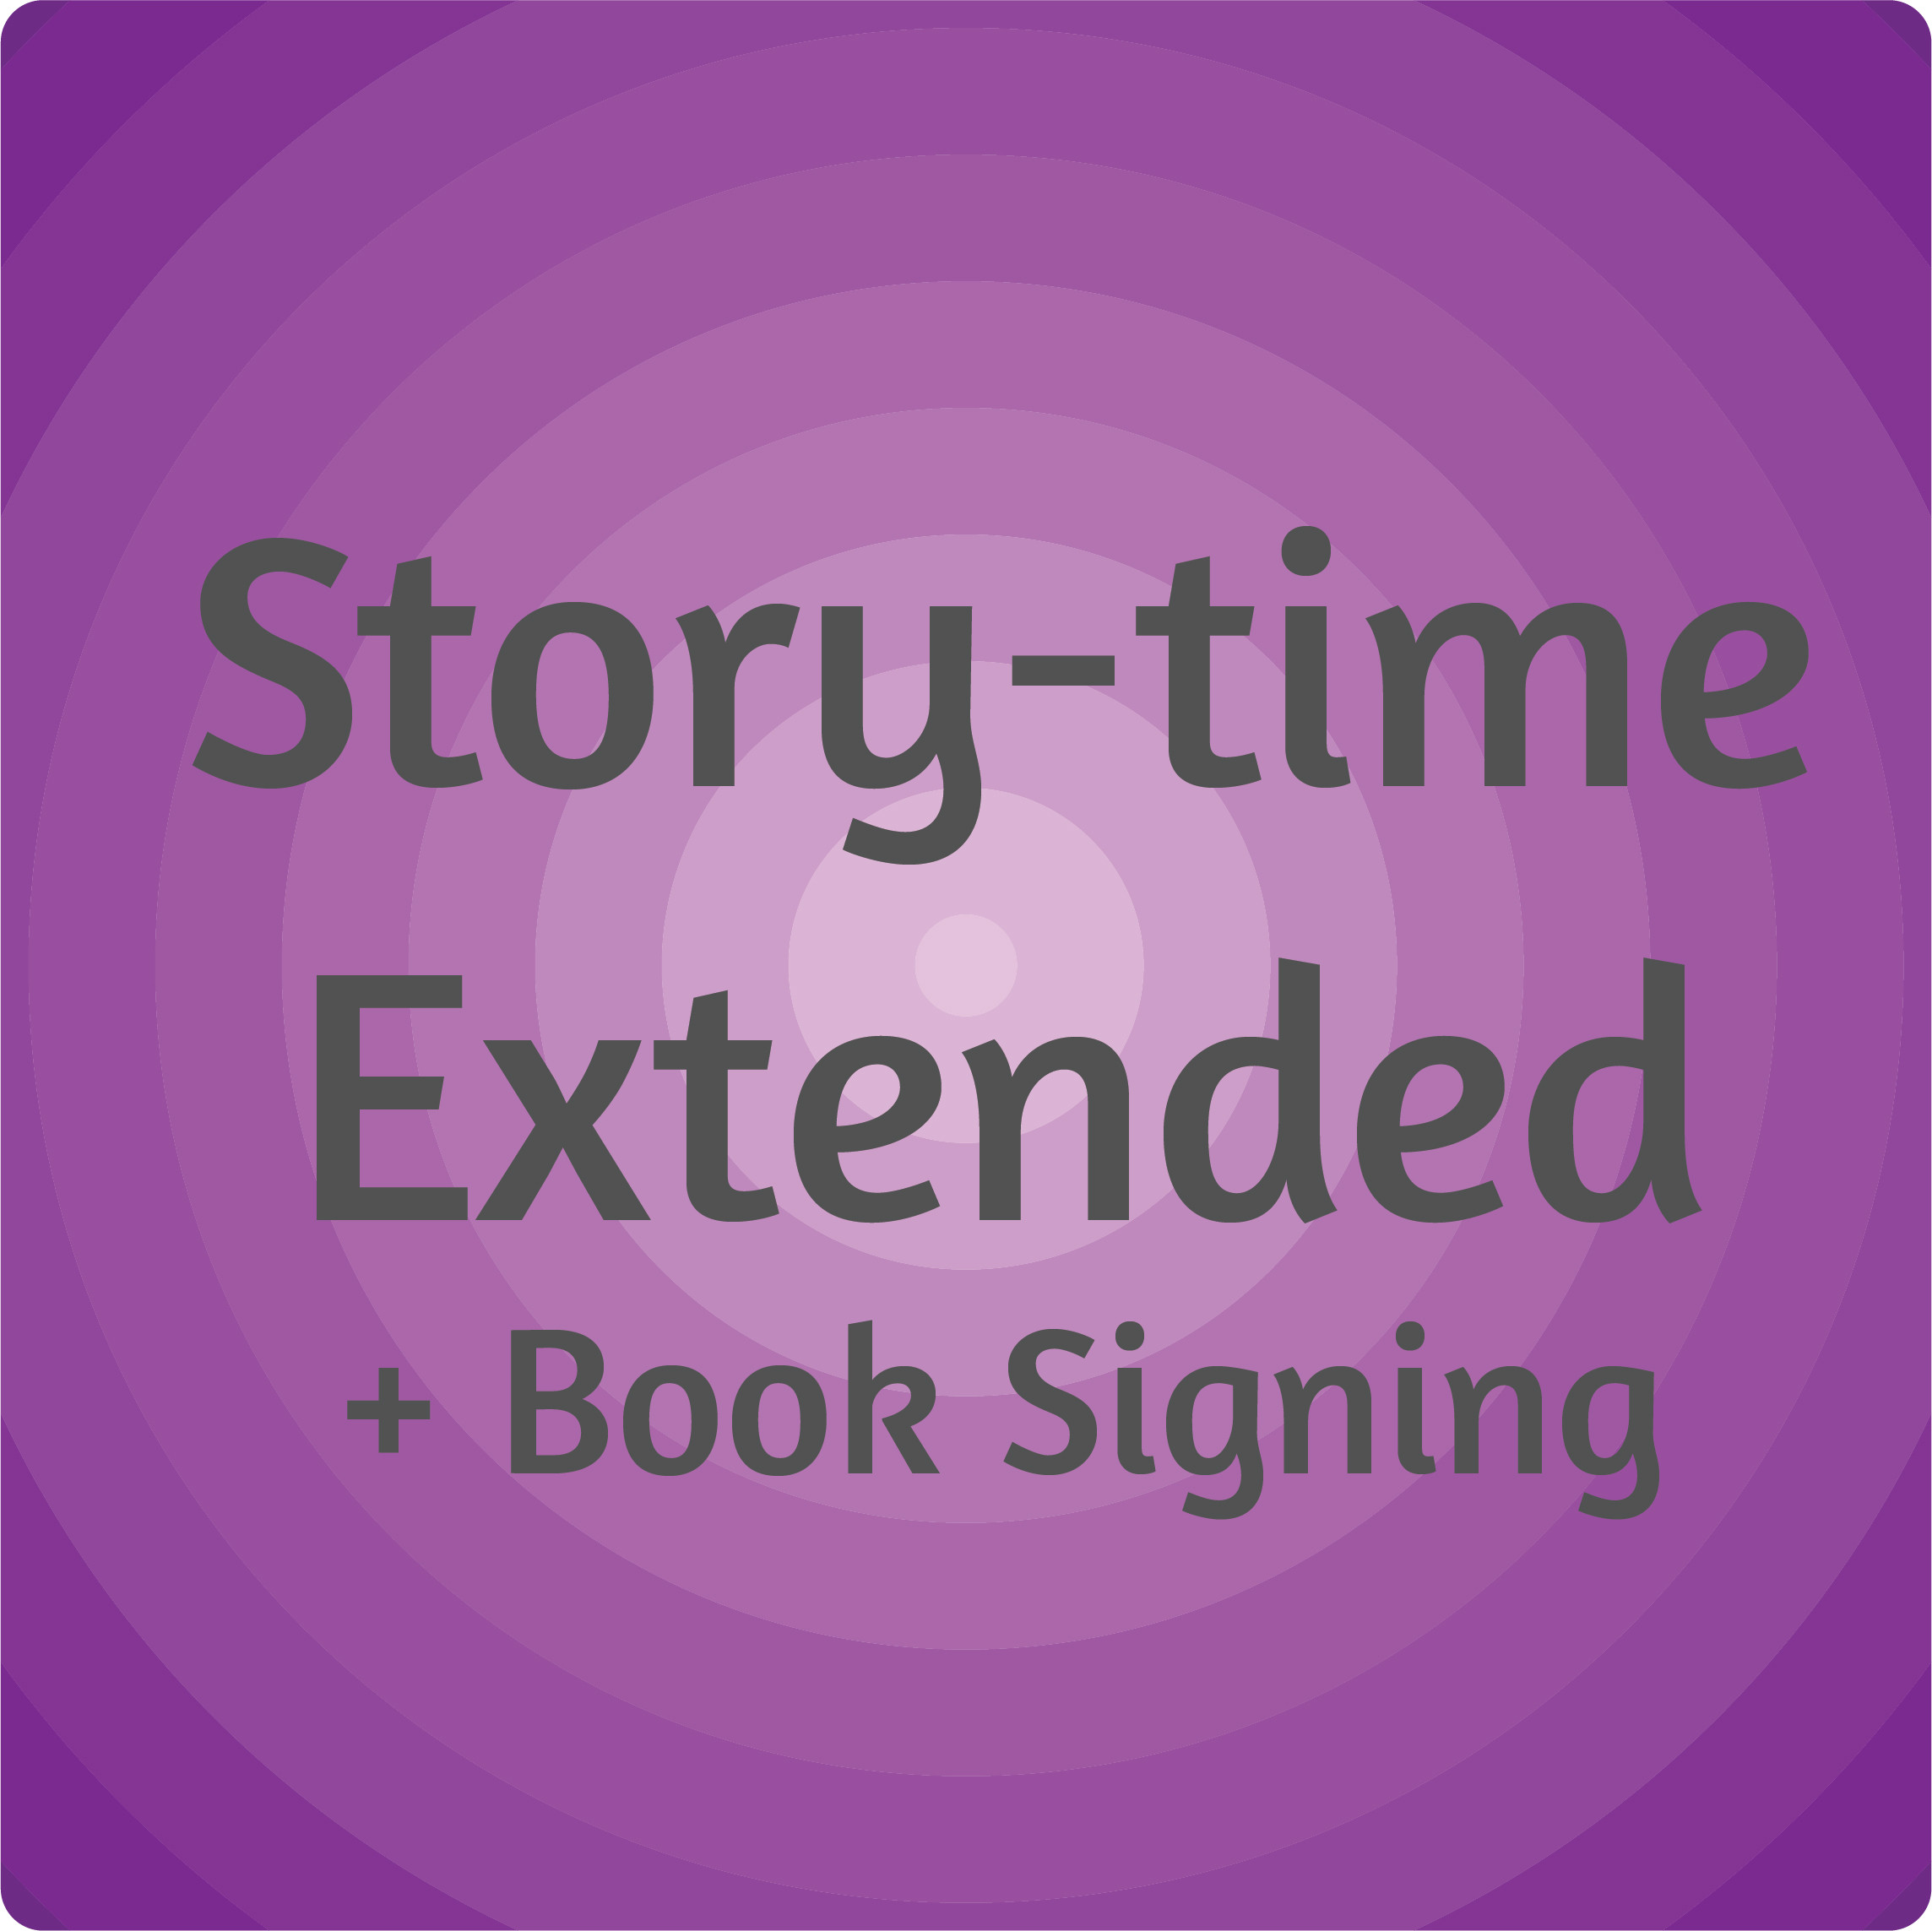 Story-time Extended + Book Signing